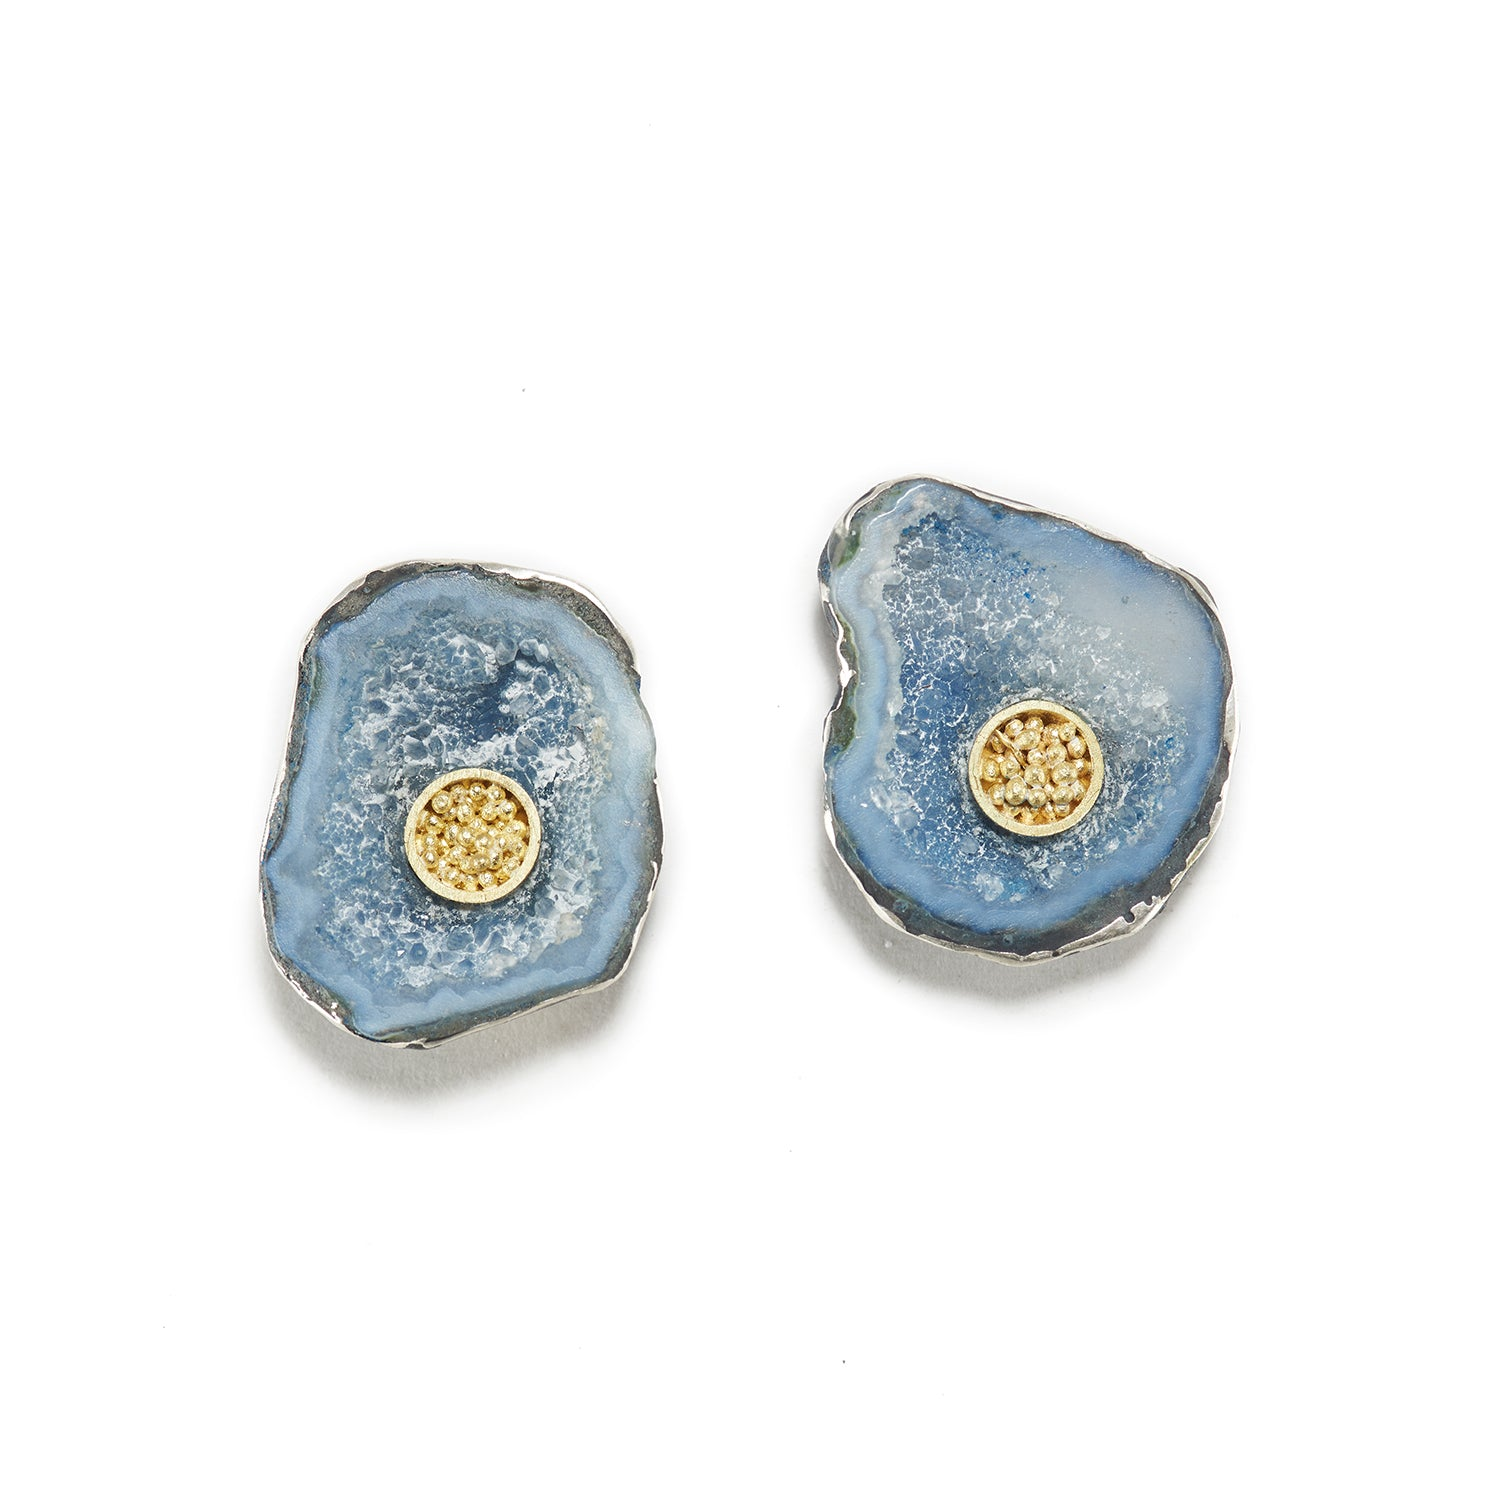 Maritime Geode Earrings